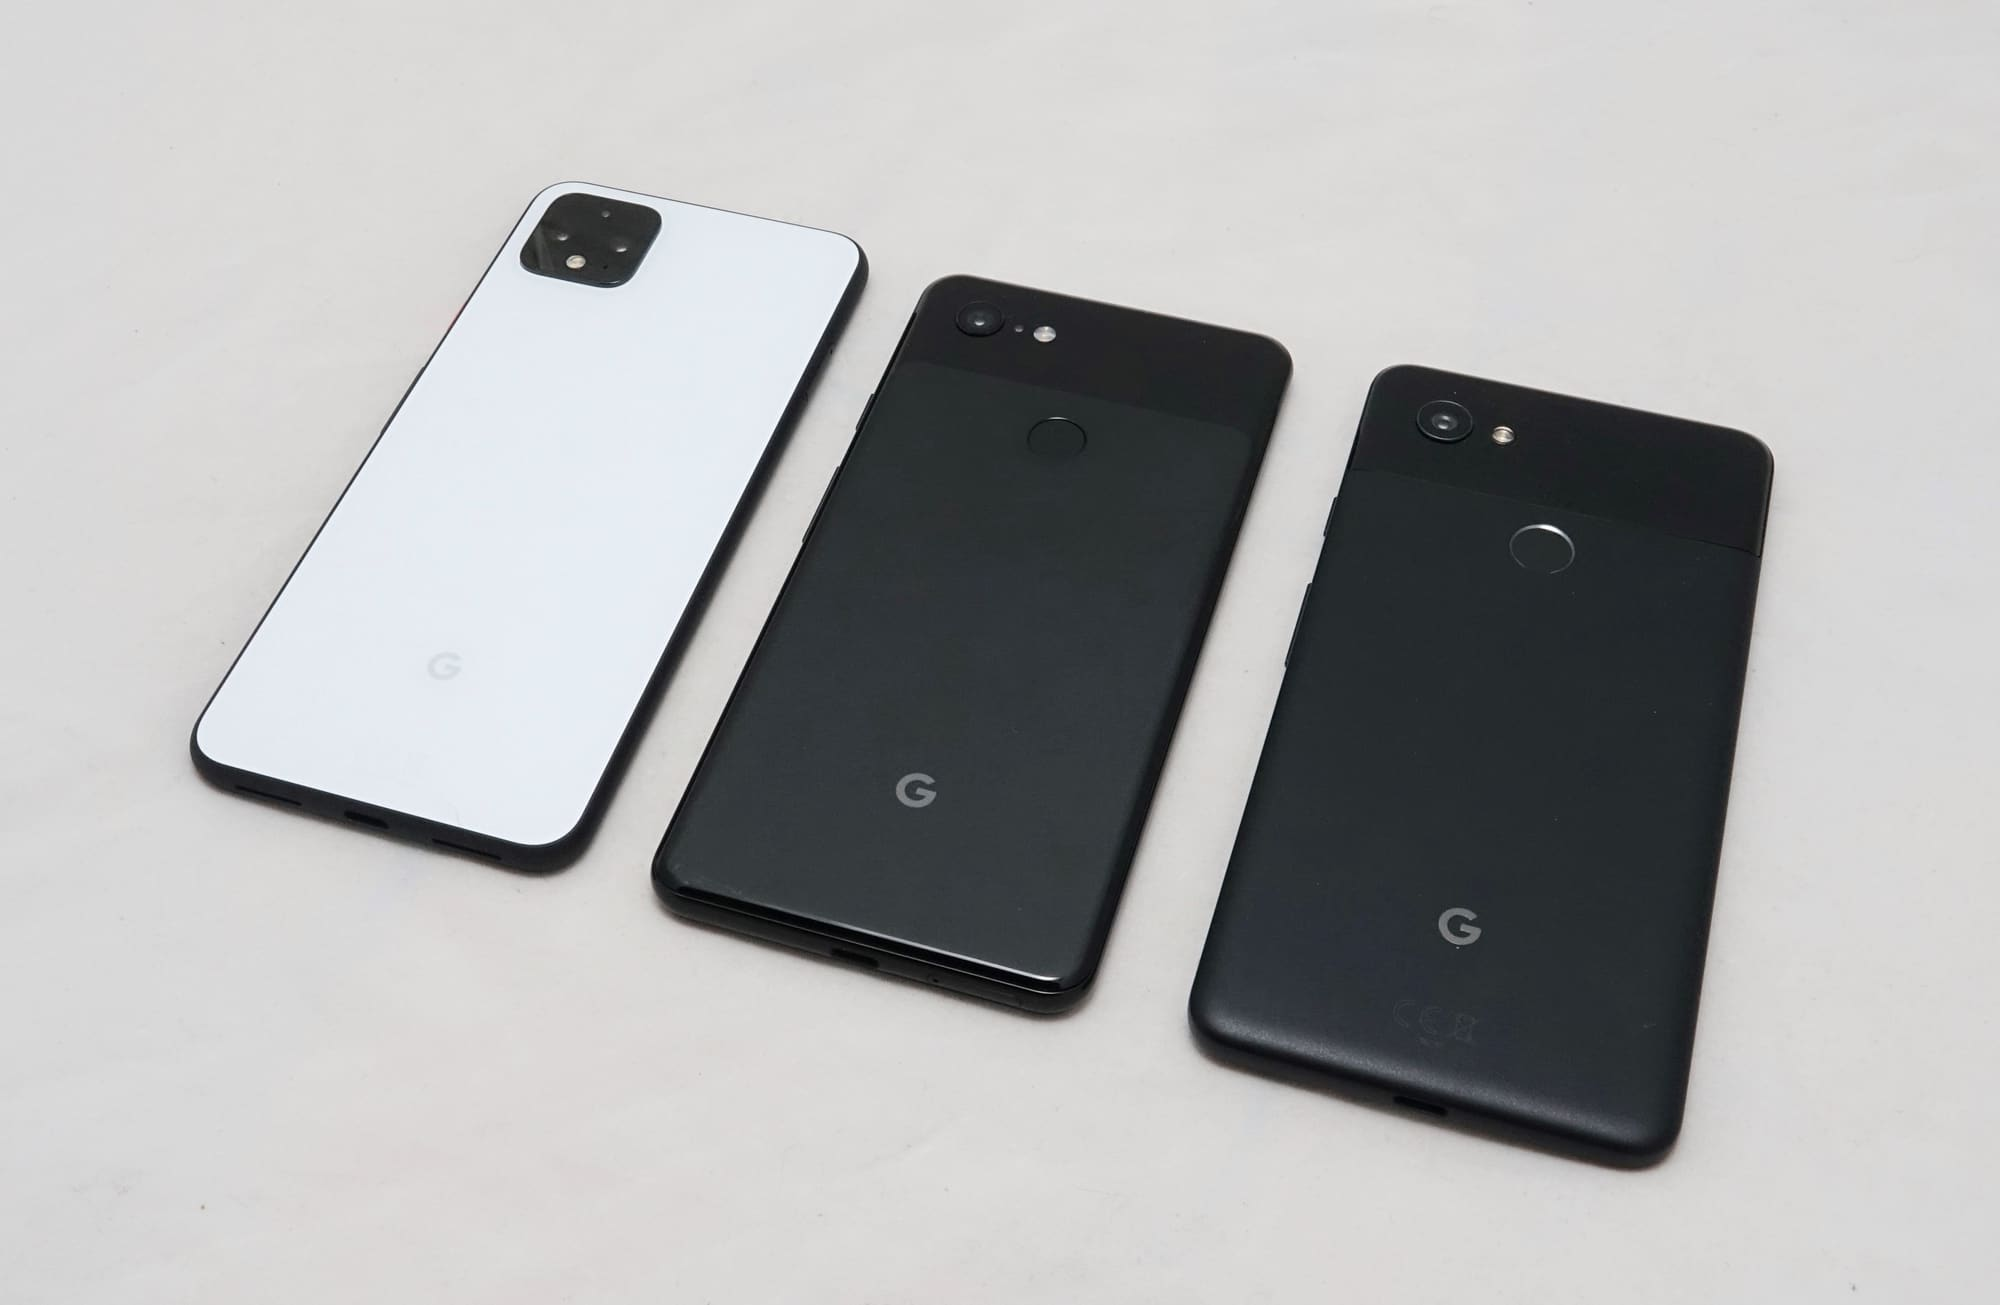 Google Pixel 4 XL (left) next to the Pixel 3 XL (middle) and Pixel 2 XL (right)